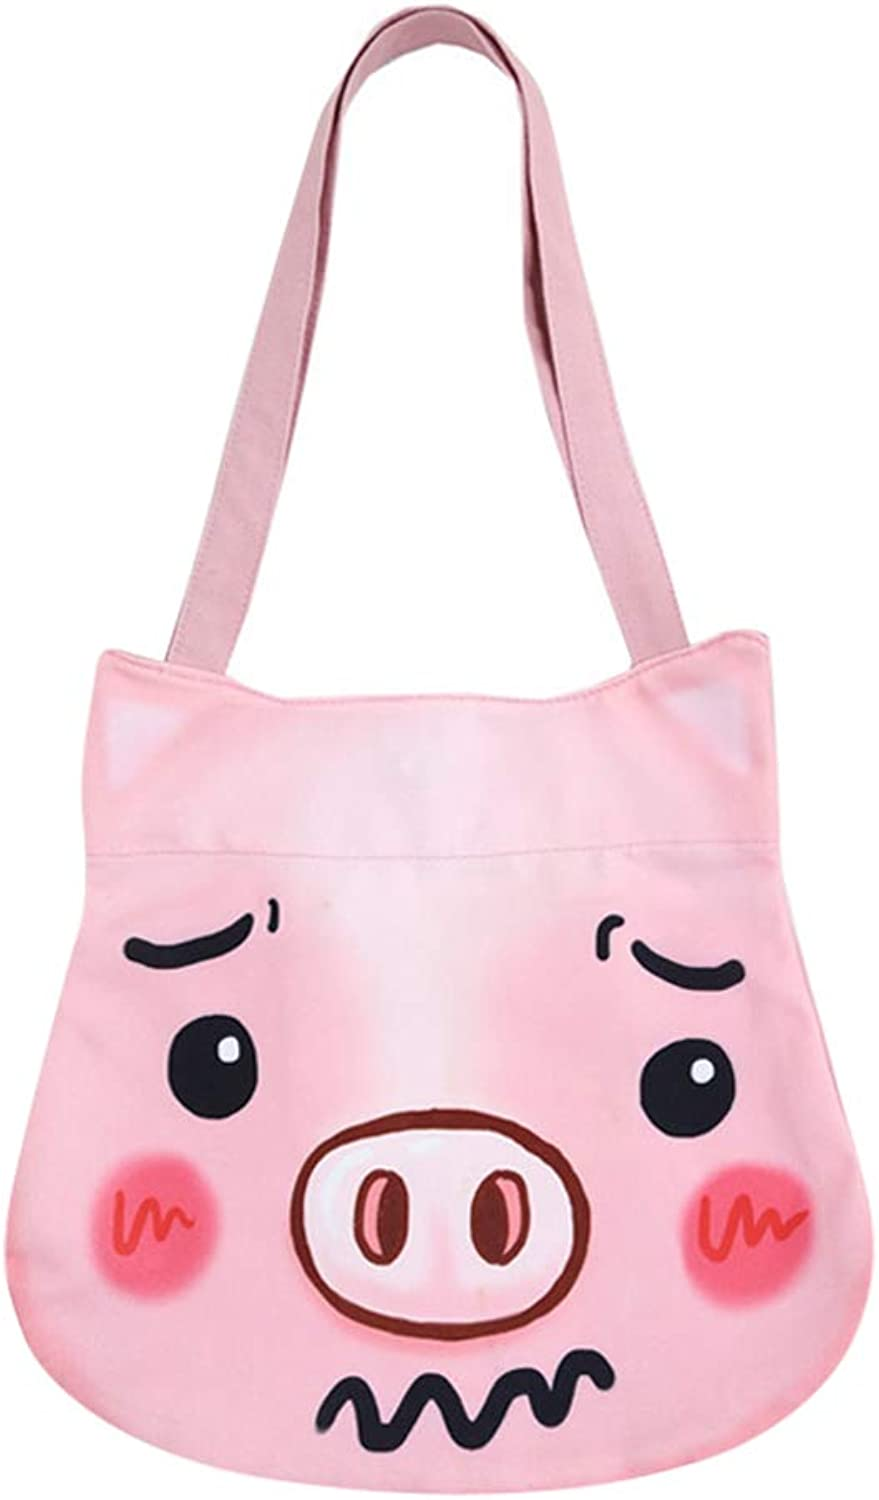 Aibearty Canvas Shoulder Bag Cute Large Capacity Handbag